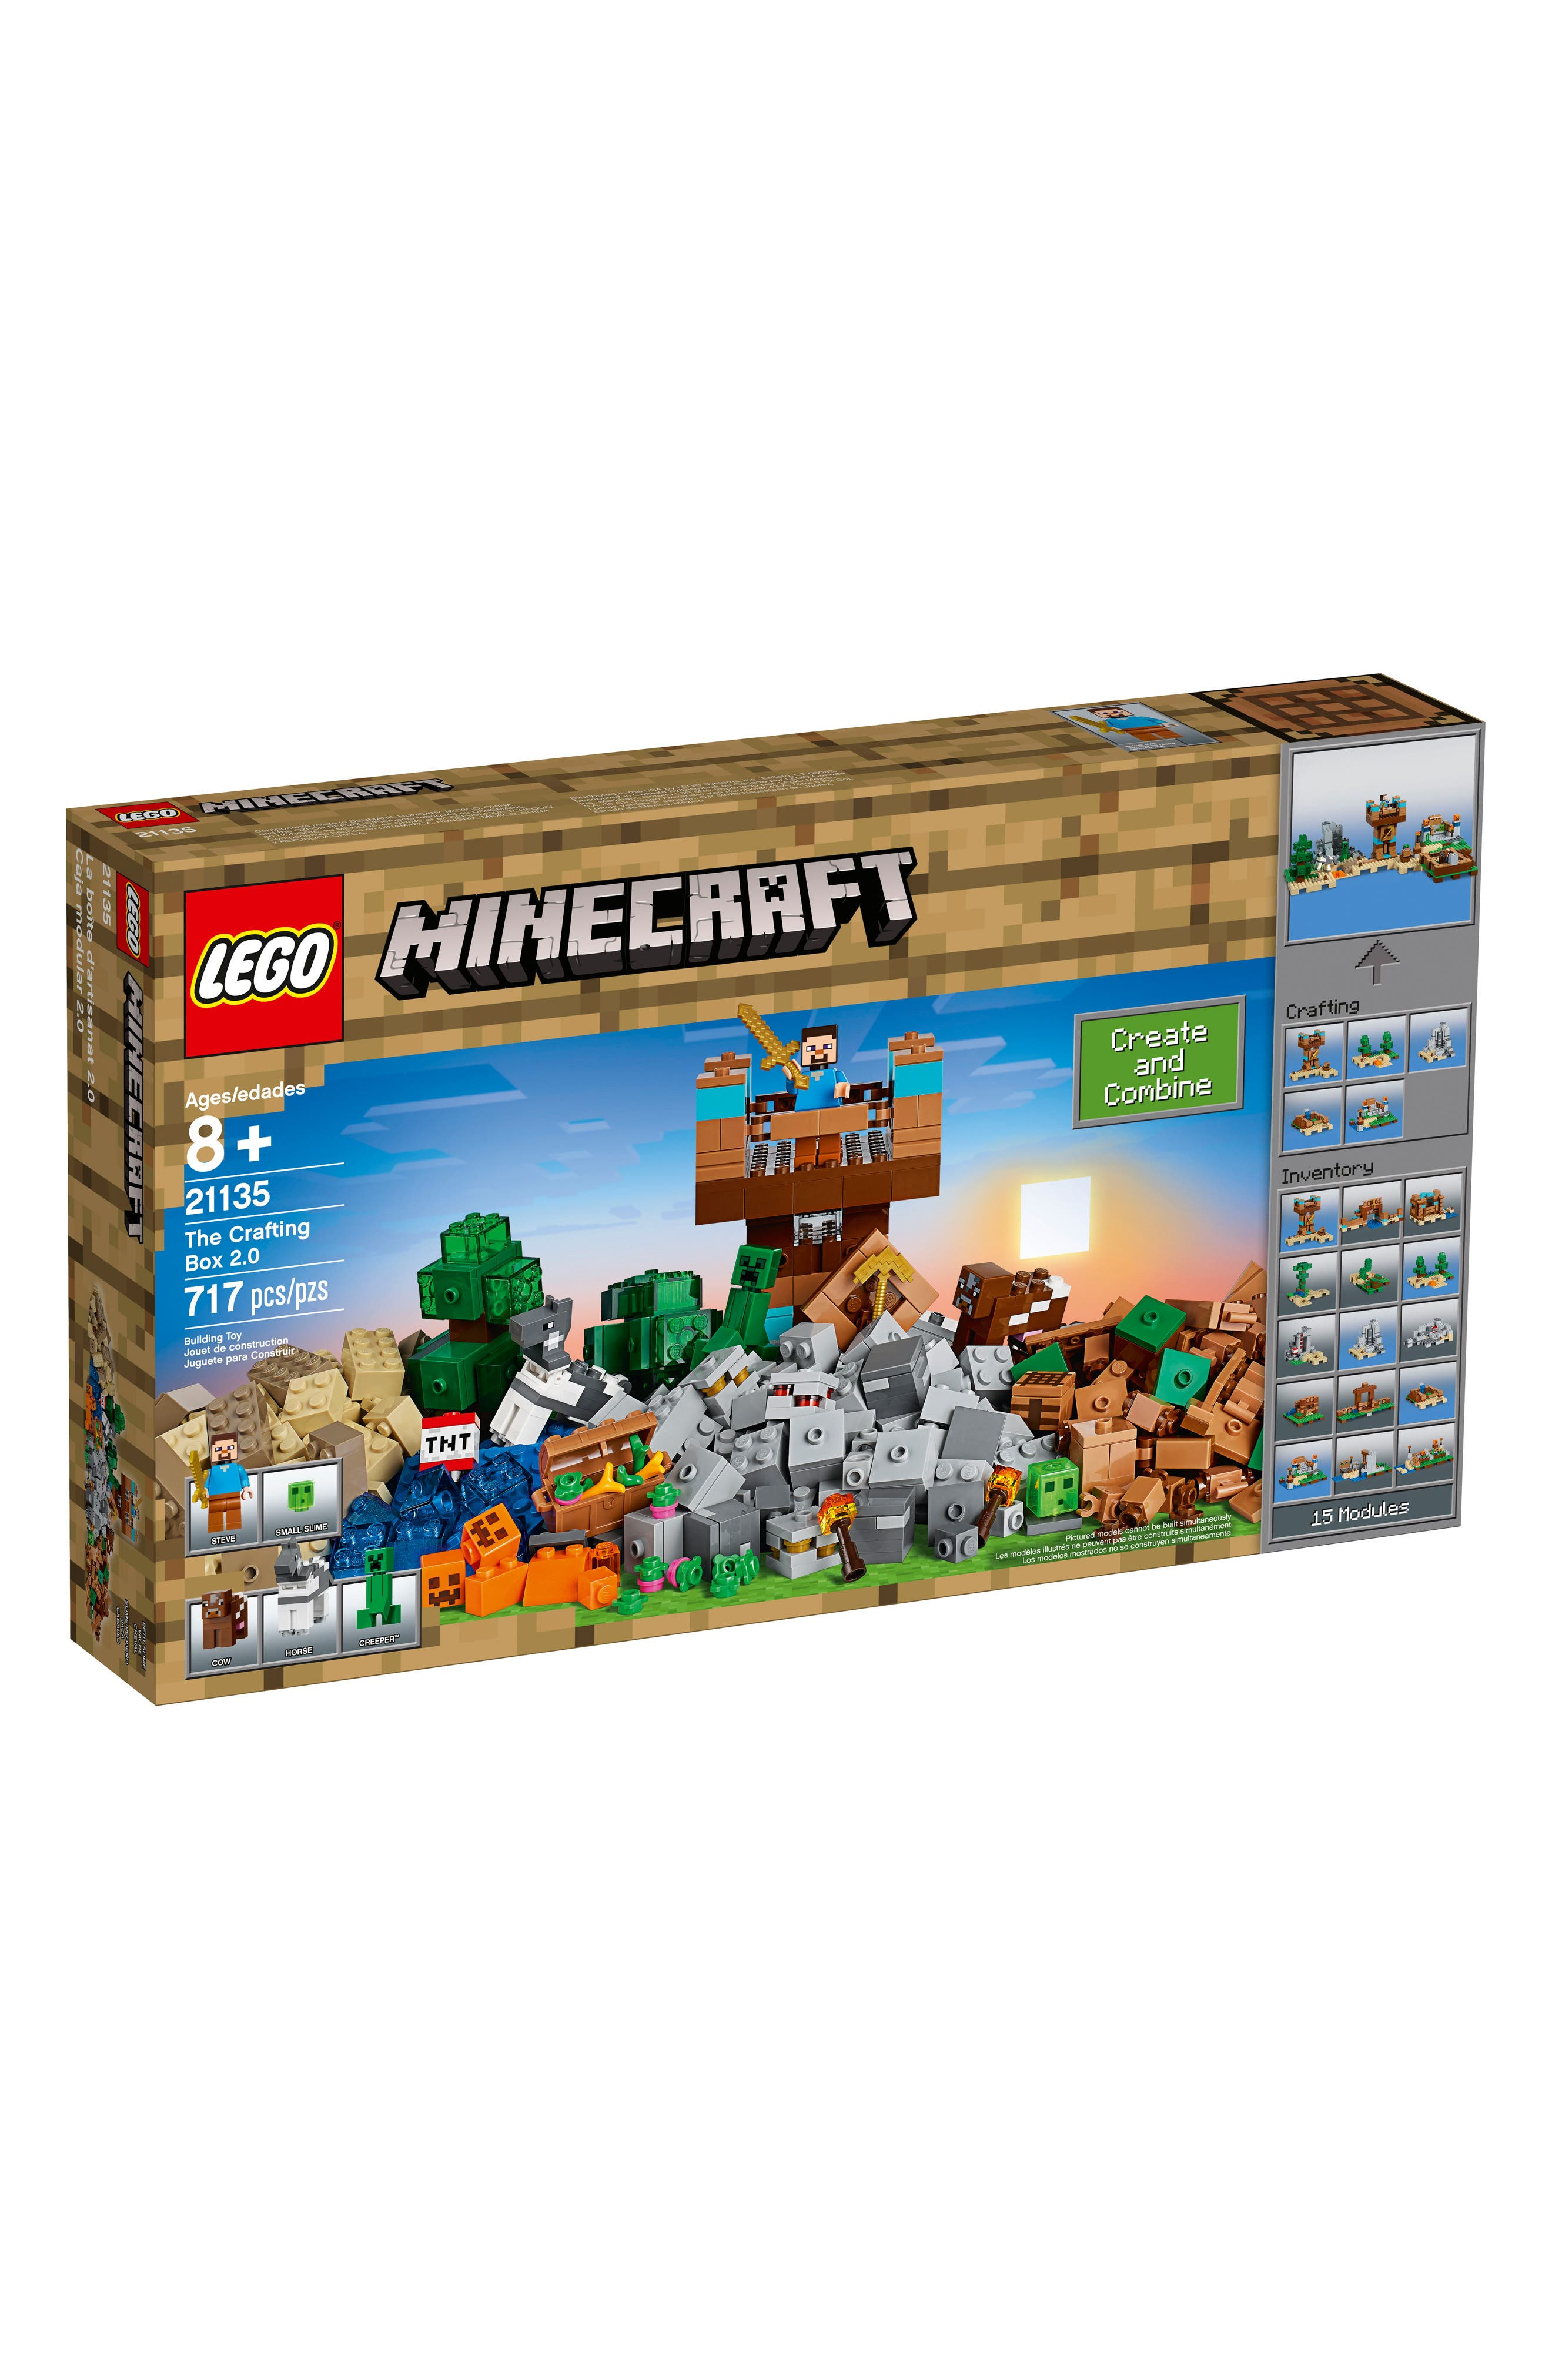 LEGO® Minecraft™ The Crafting Box 2.0 Play Set - 21135